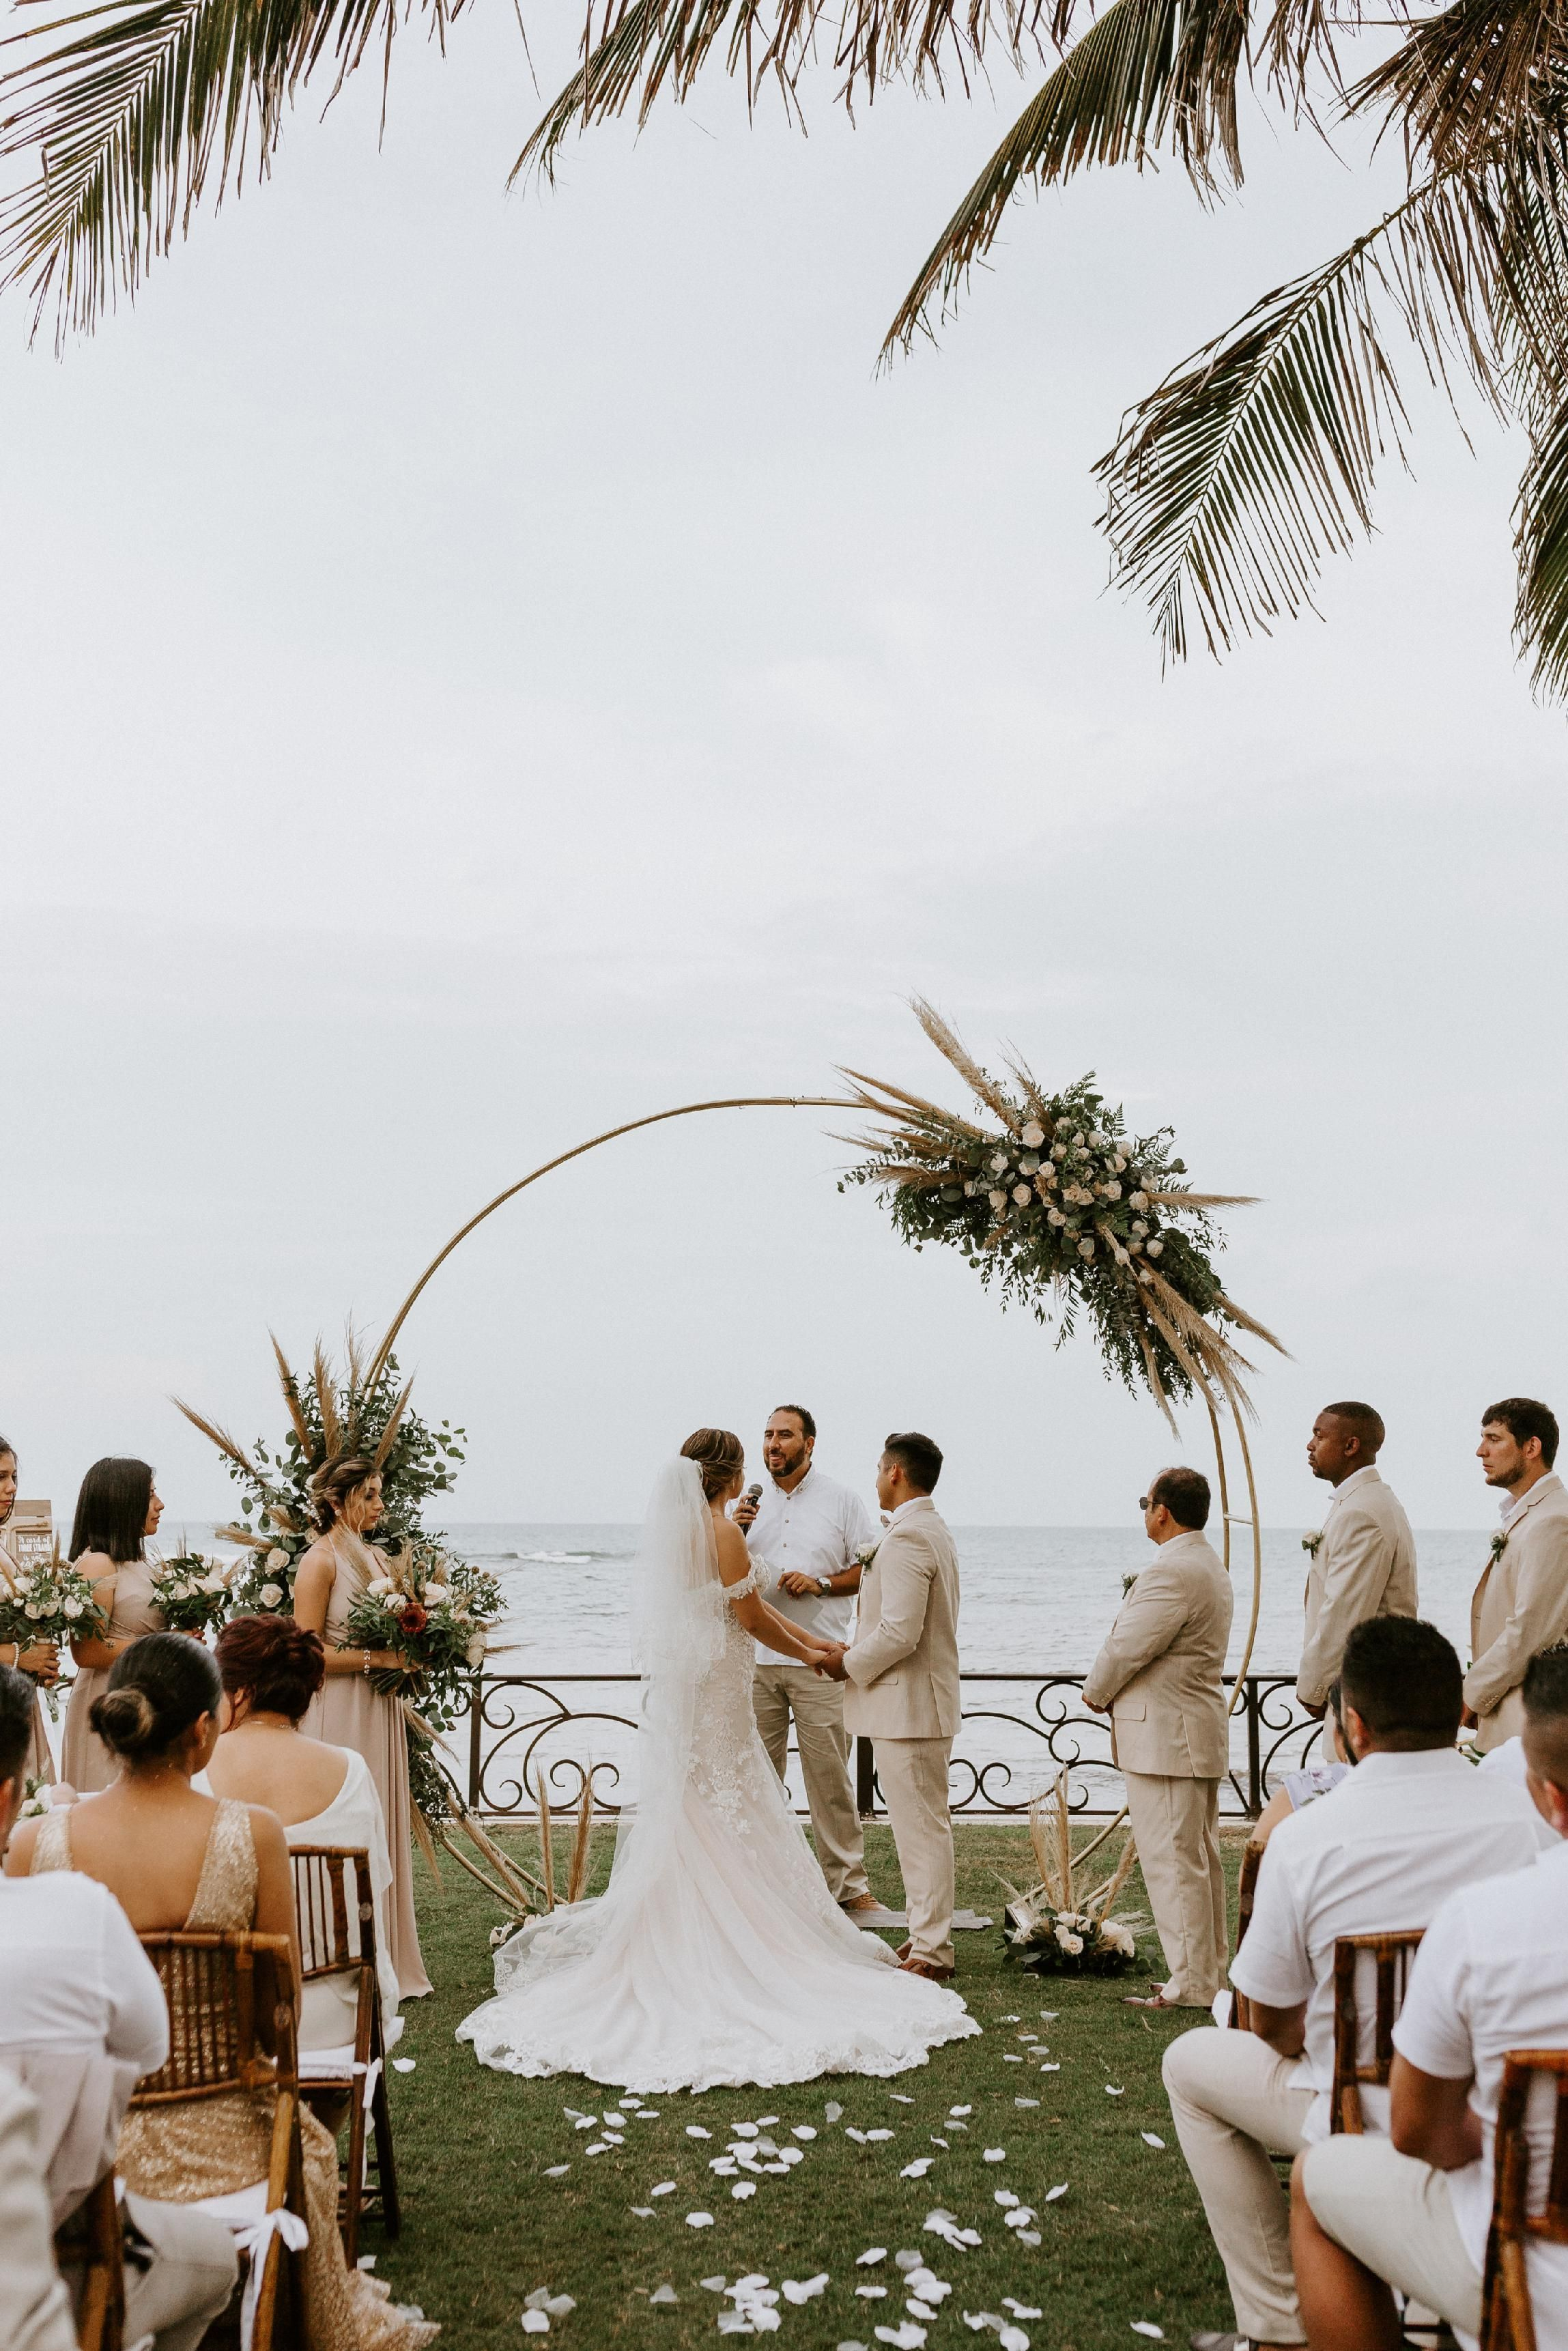 TOP 10 Ceremony Songs for Processional in 2020 Ceremony